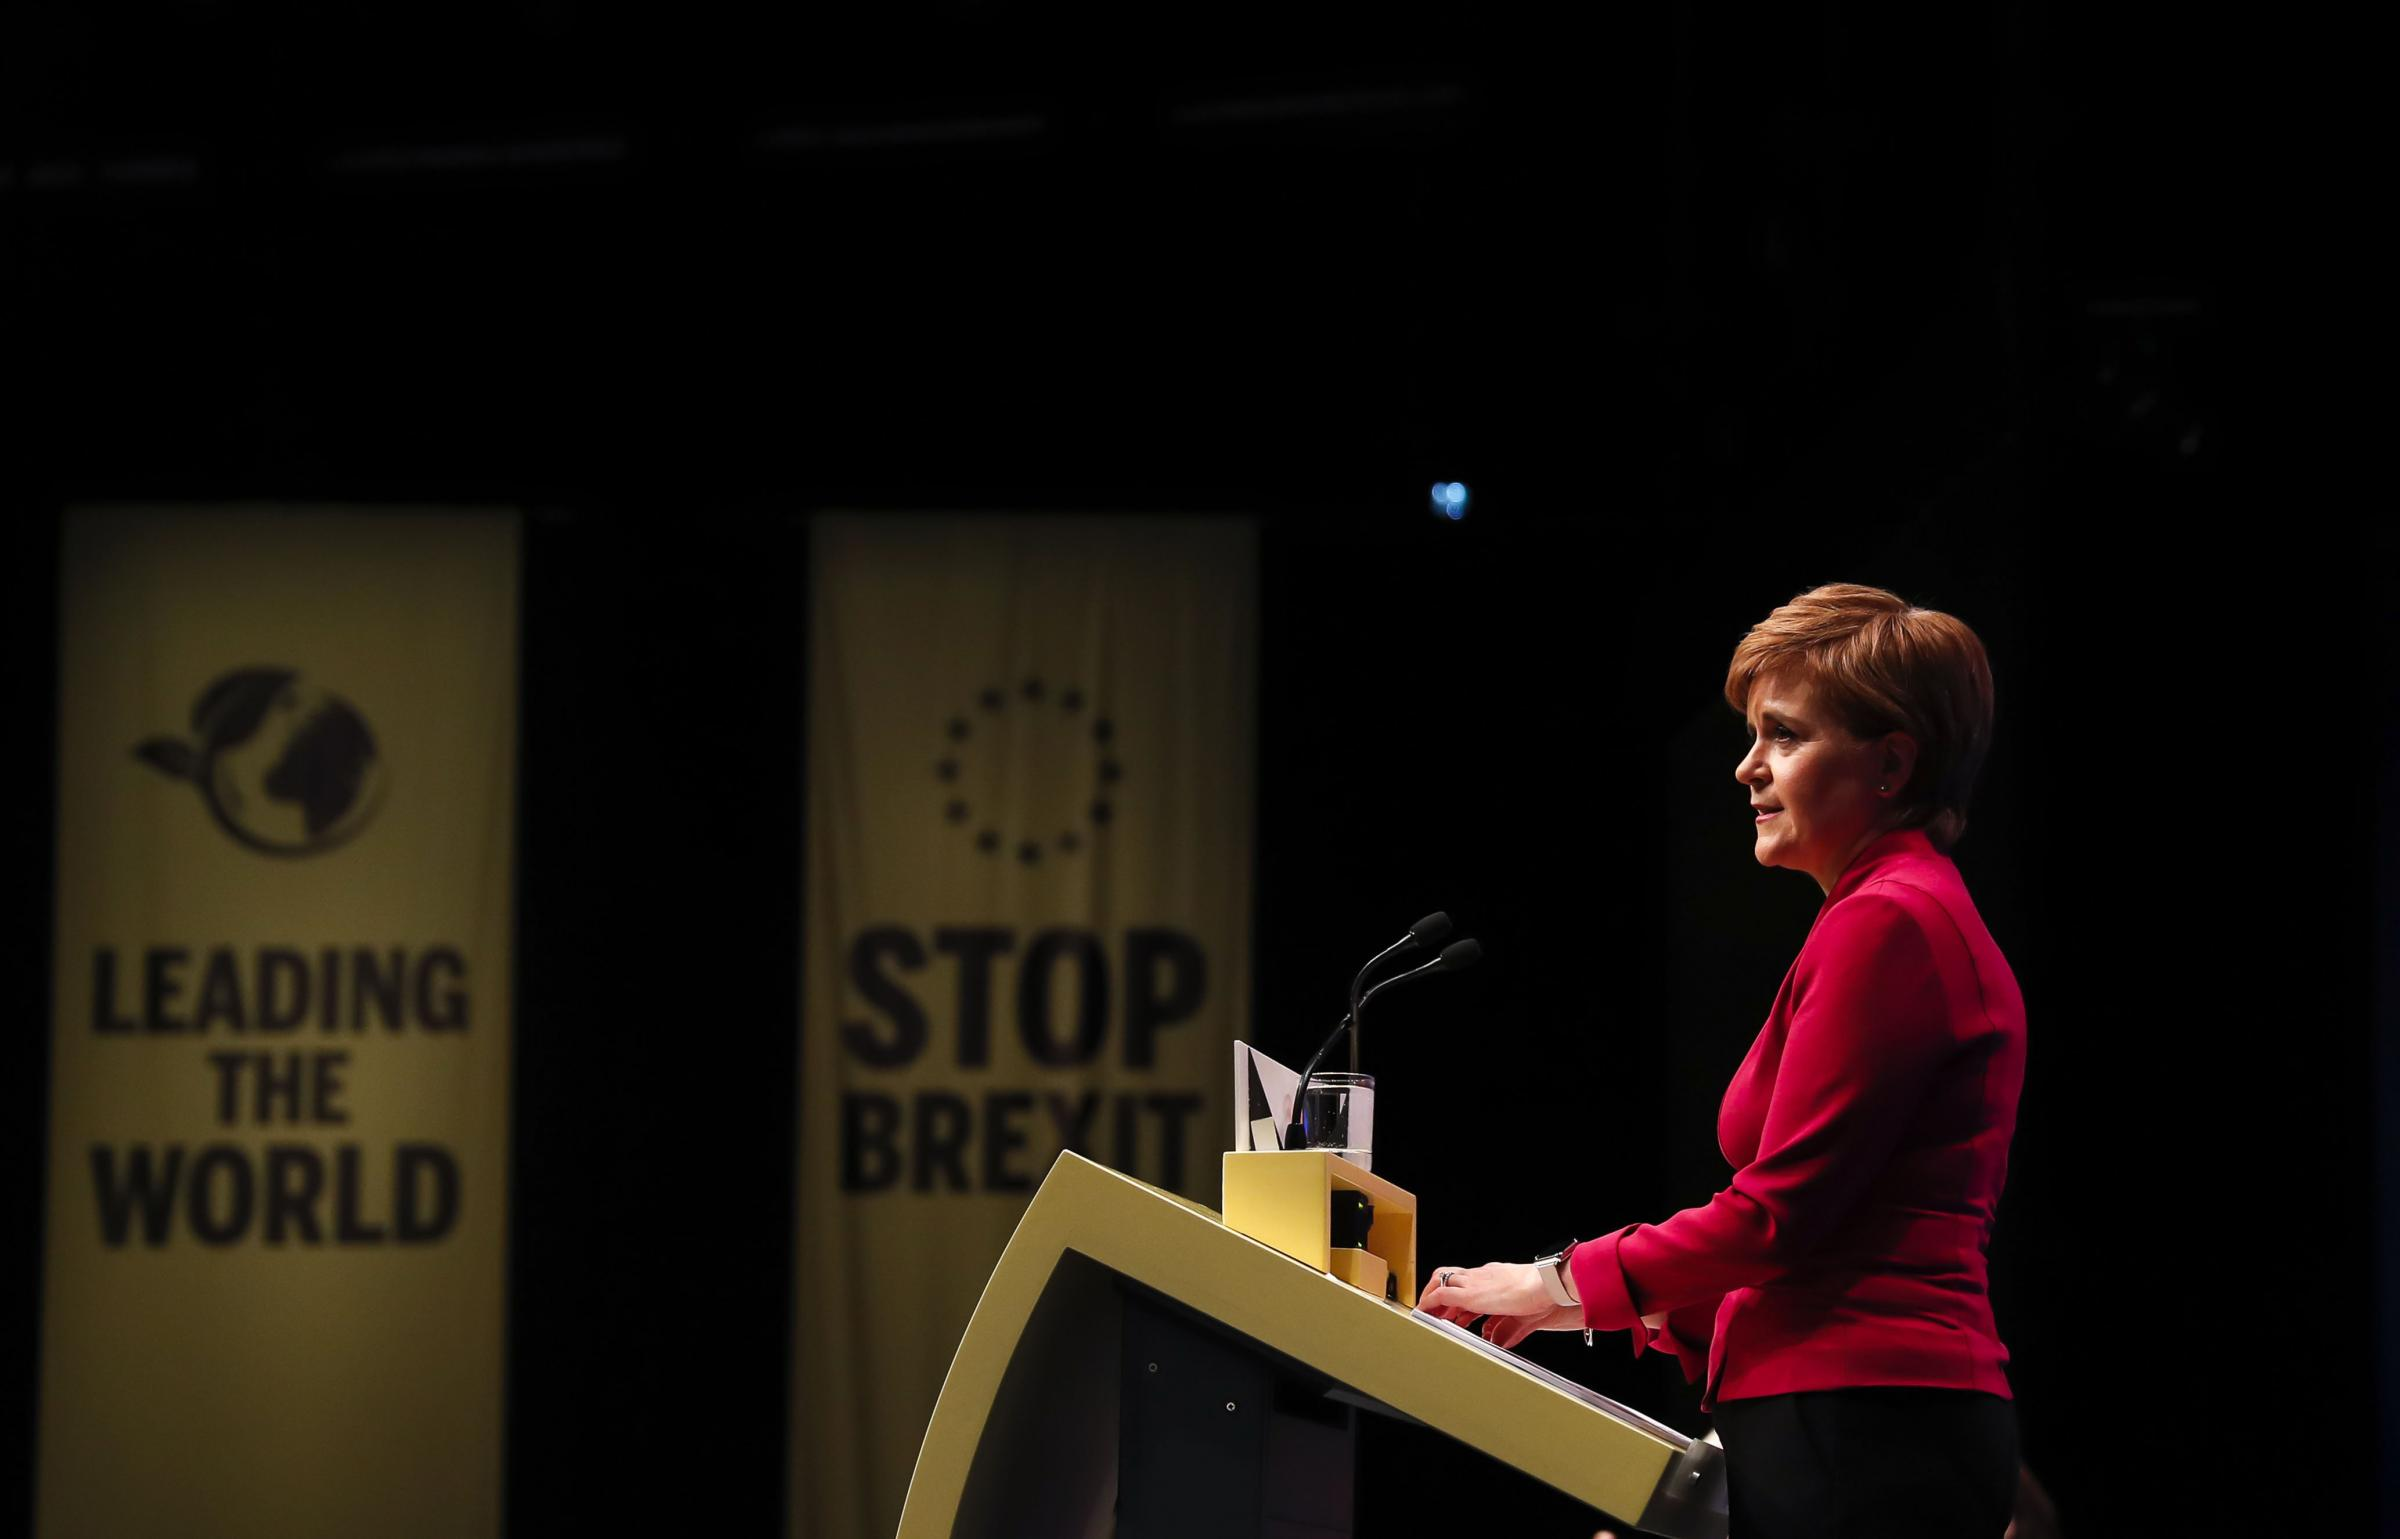 Brexit: 'Hard to imagine' worse deal for Scotland, says Sturgeon